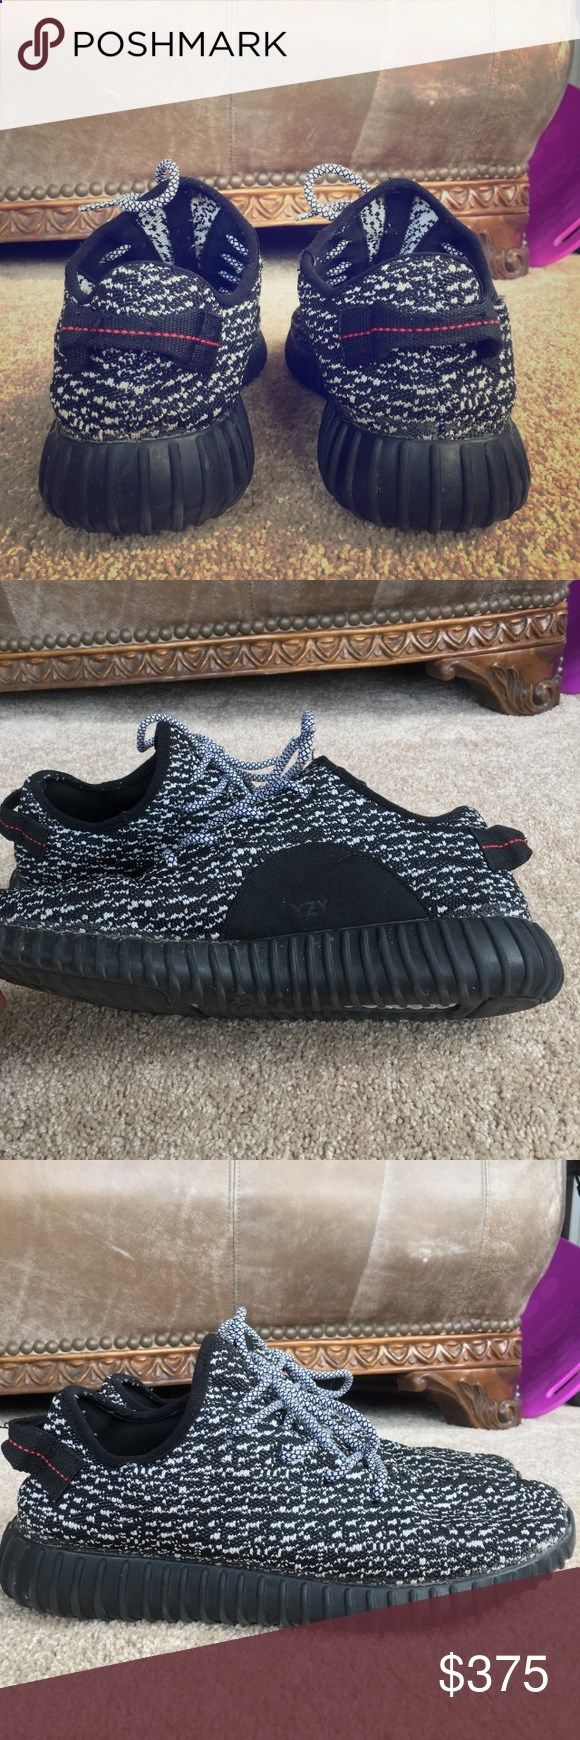 adidas yeezy boost 350 men size 11 adidas yeezy womens black